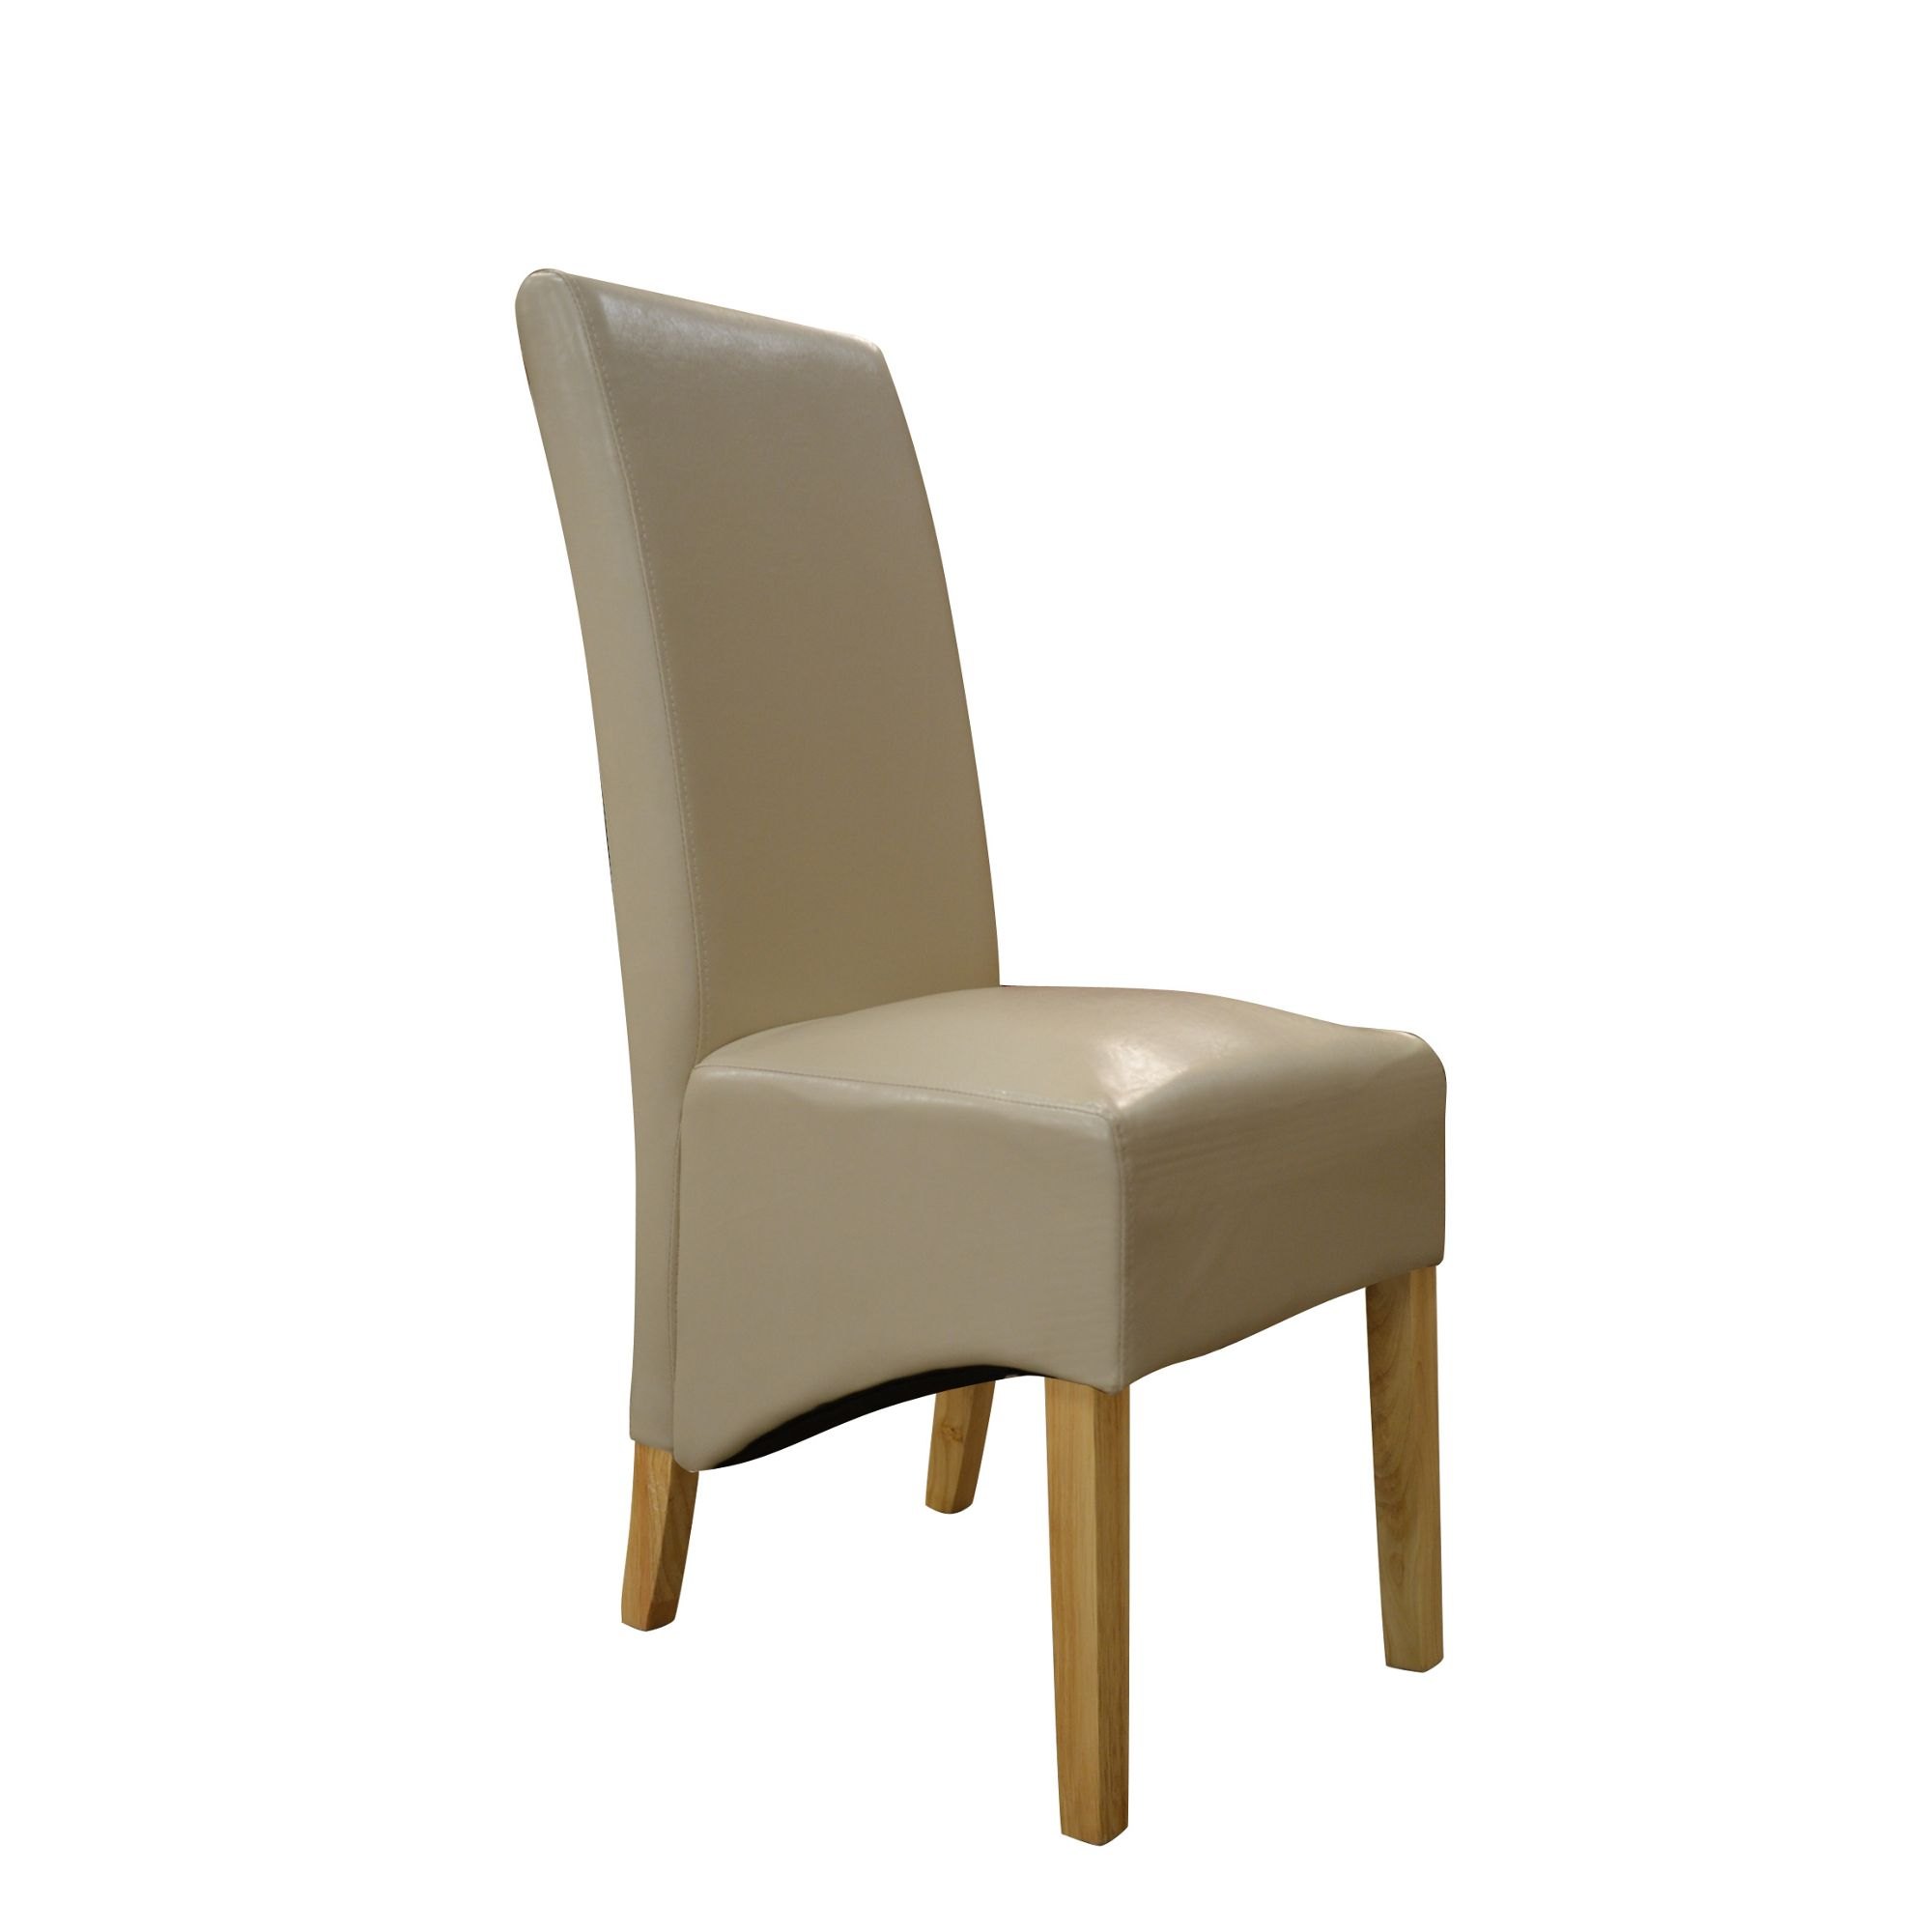 Belgravia Cream Bicast Leather High Back Dining Chair